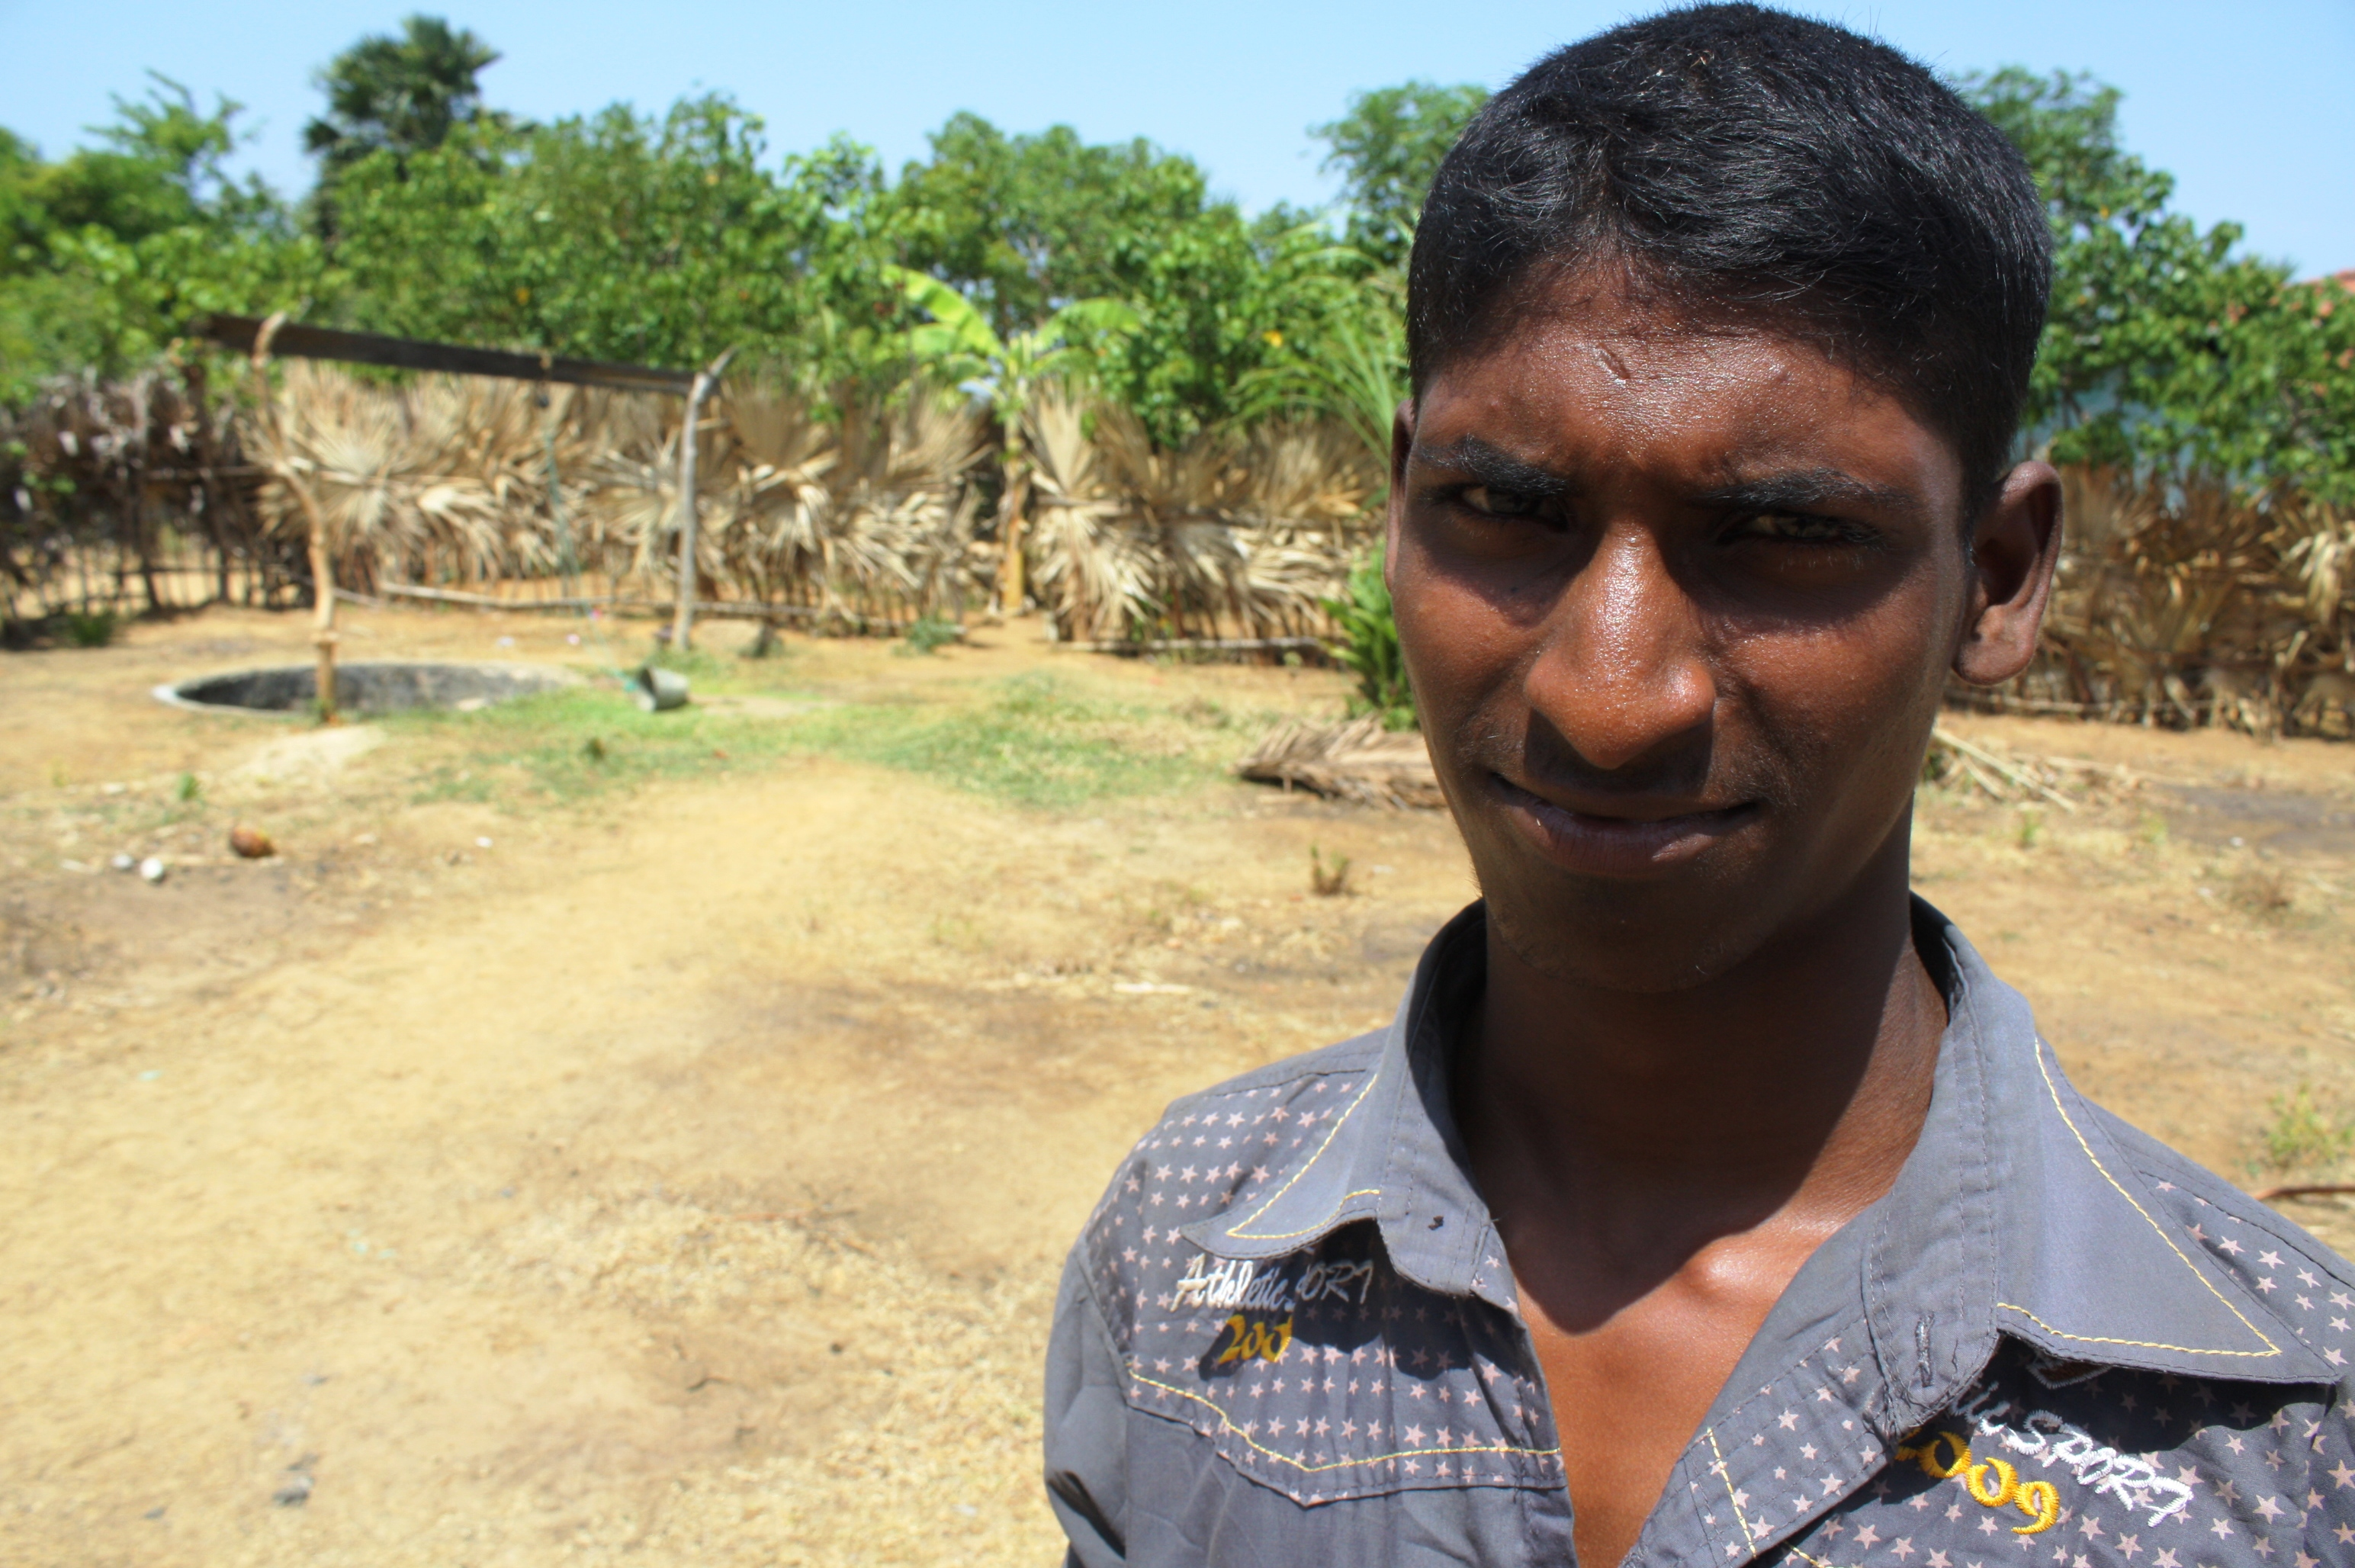 A young man looks to the camera in Jaffna, northern Sri Lanka. Unemployment is rife amongst young people in the former conflict zone